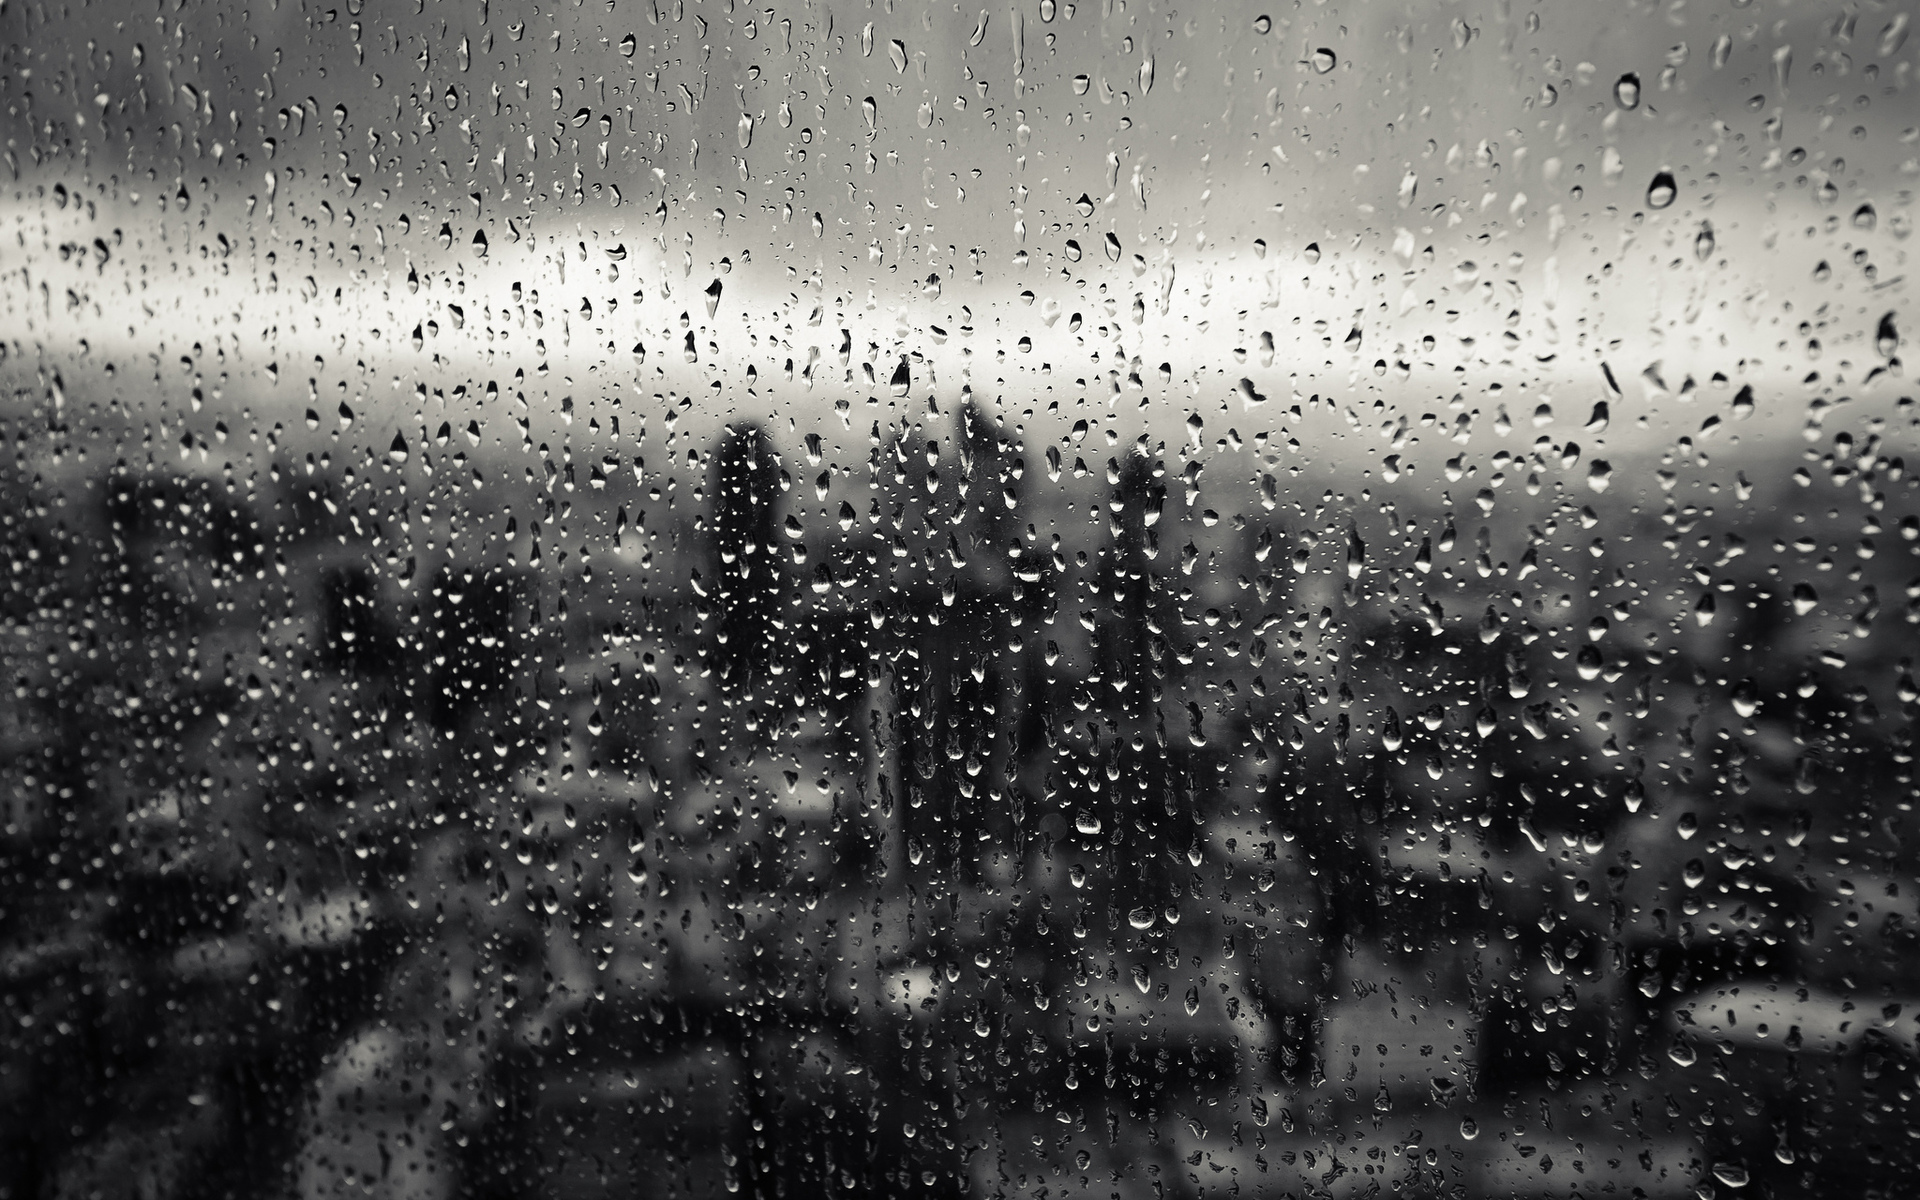 sad rainy weather images - HD 1920×1200